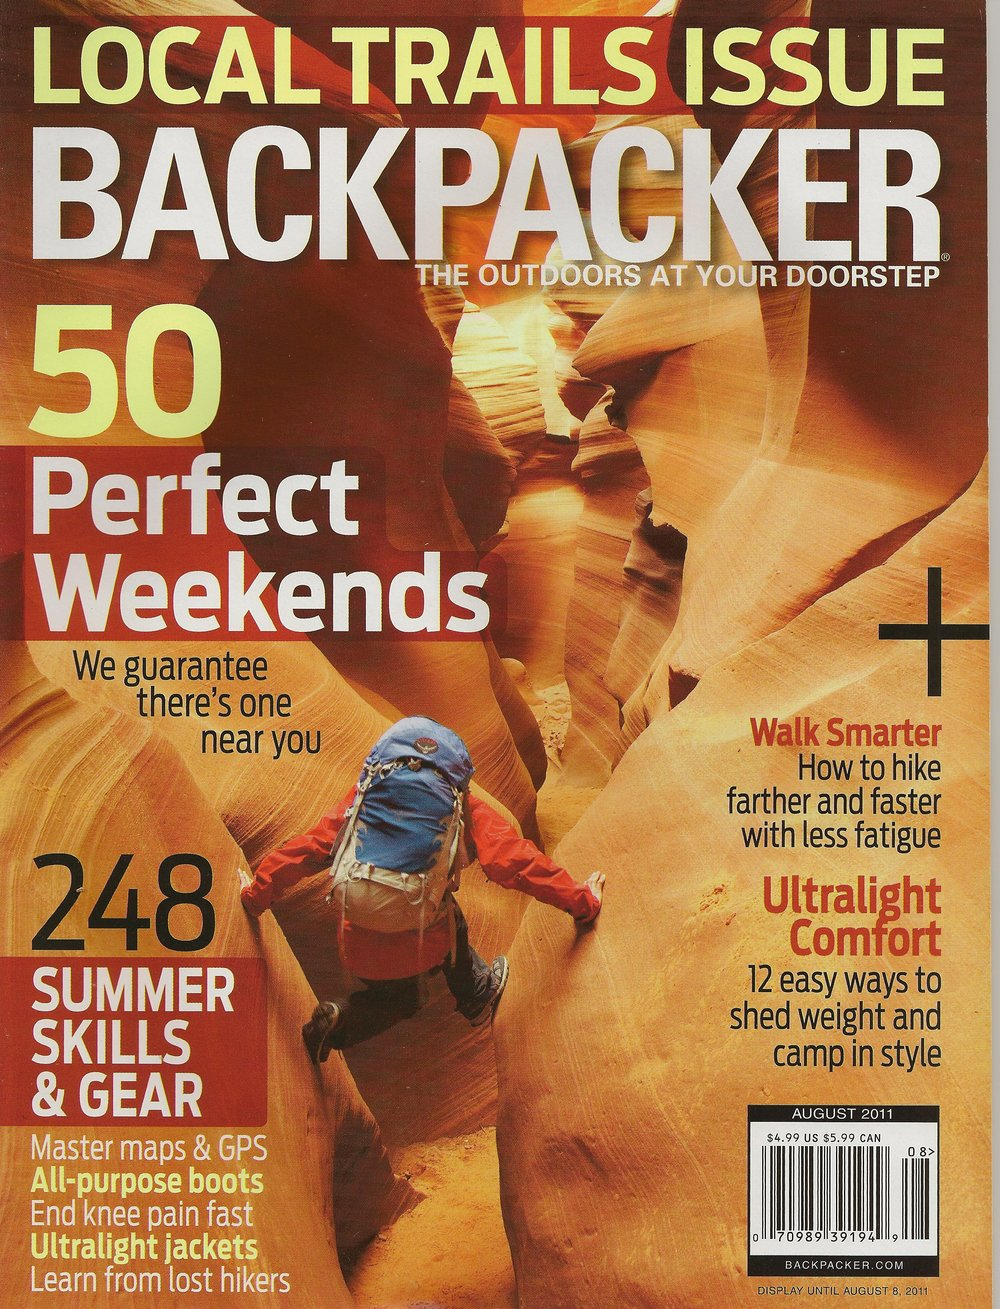 Sheltowee Trace BACKPACKER magazine - August 2011 Page 1 Page 2